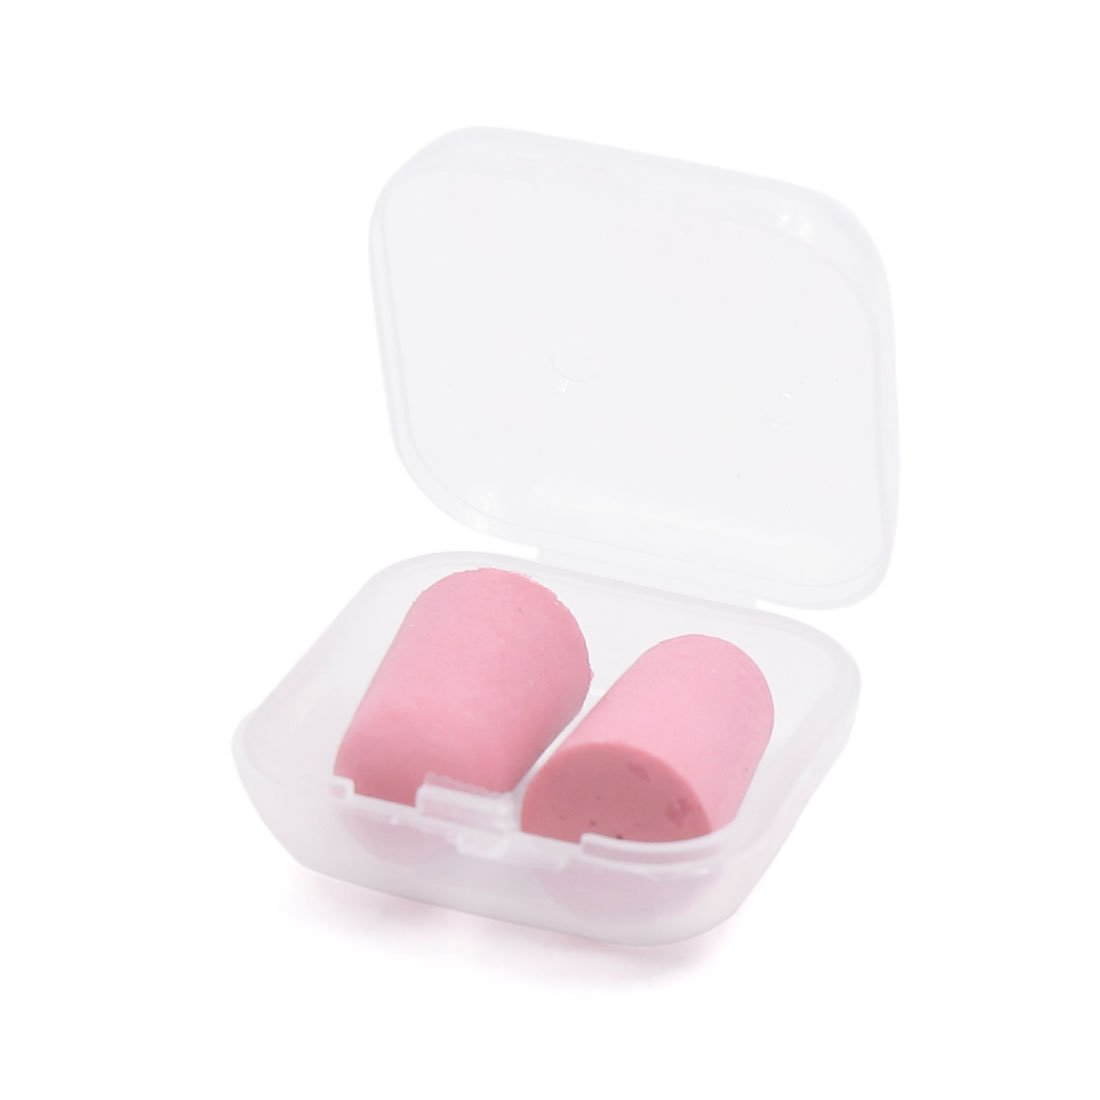 uxcell® 1 Pair Pink Disposable Foam Noise Reduction Soft Snore Sleep Earplugs Ear Plug Hearing Protector by uxcell (Image #2)